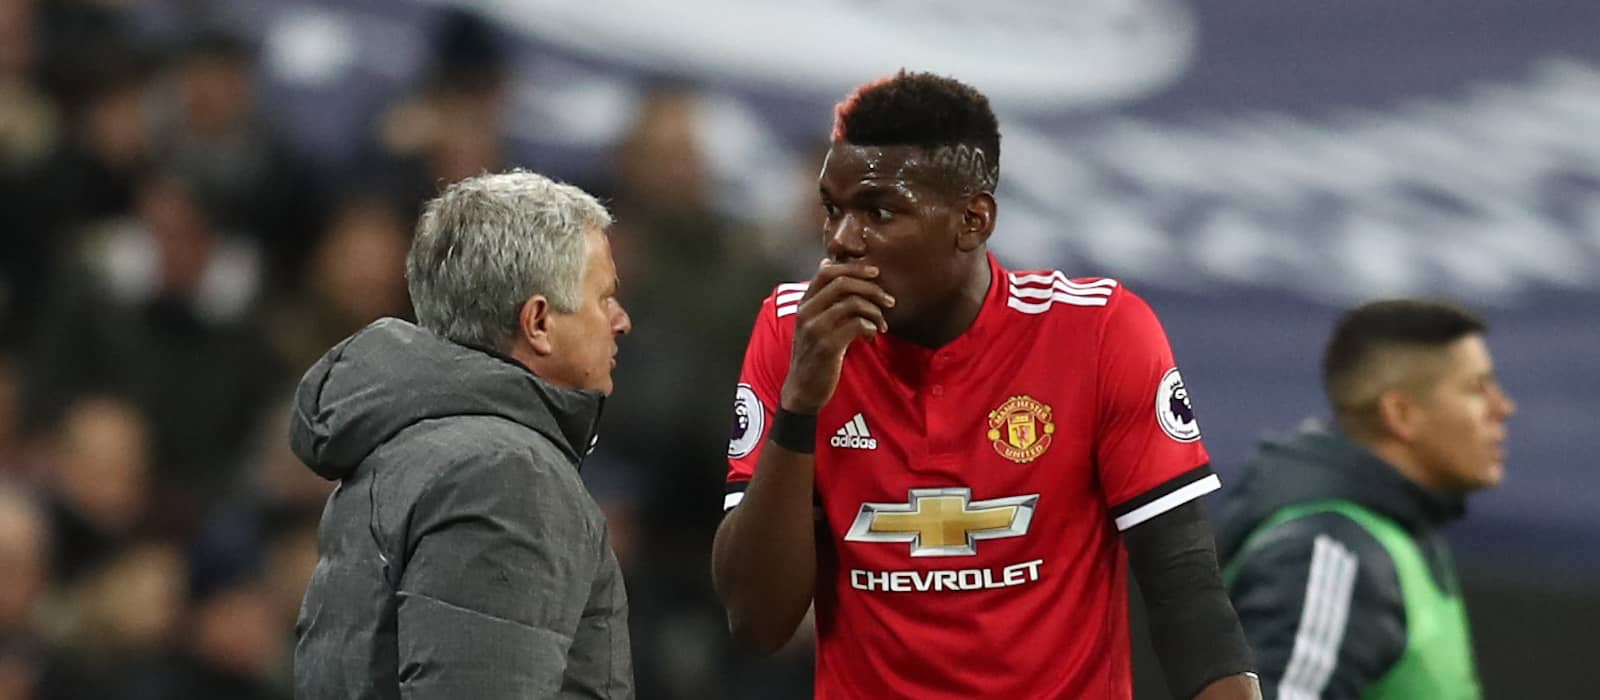 Graeme Souness blasts Manchester United's Paul Pogba, calls him a schoolboy